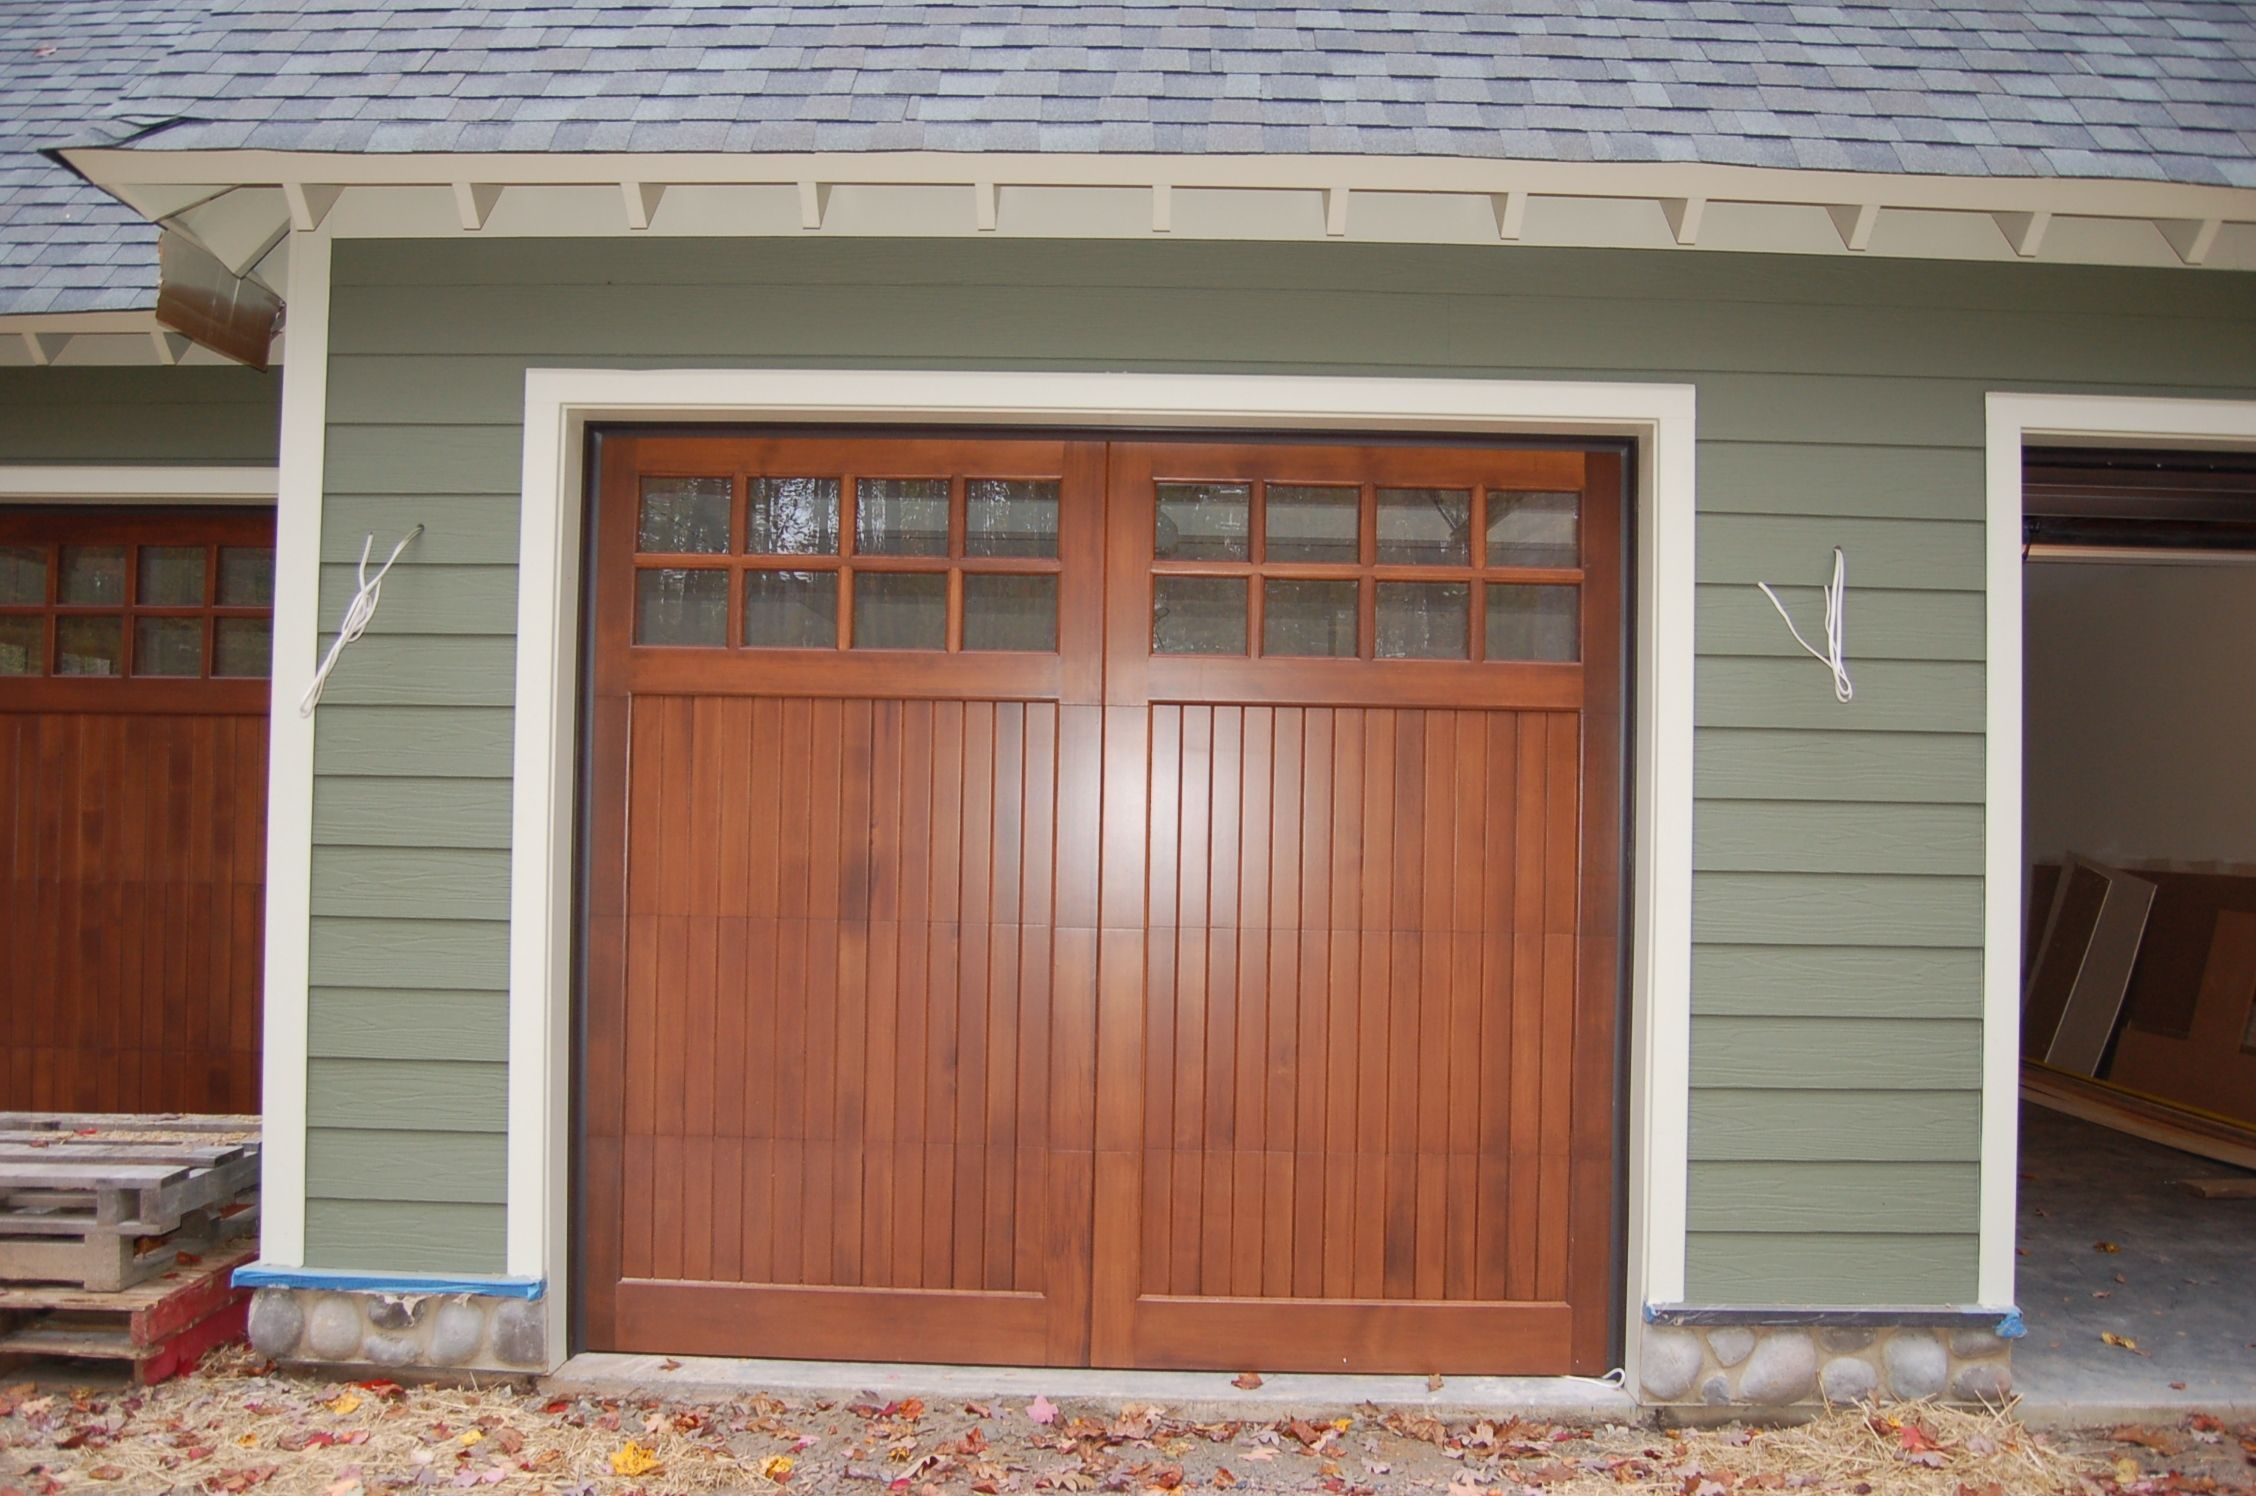 Garage And Front Doors That Match Matching Wood Garage And Front Doors House Ideas Craftsman